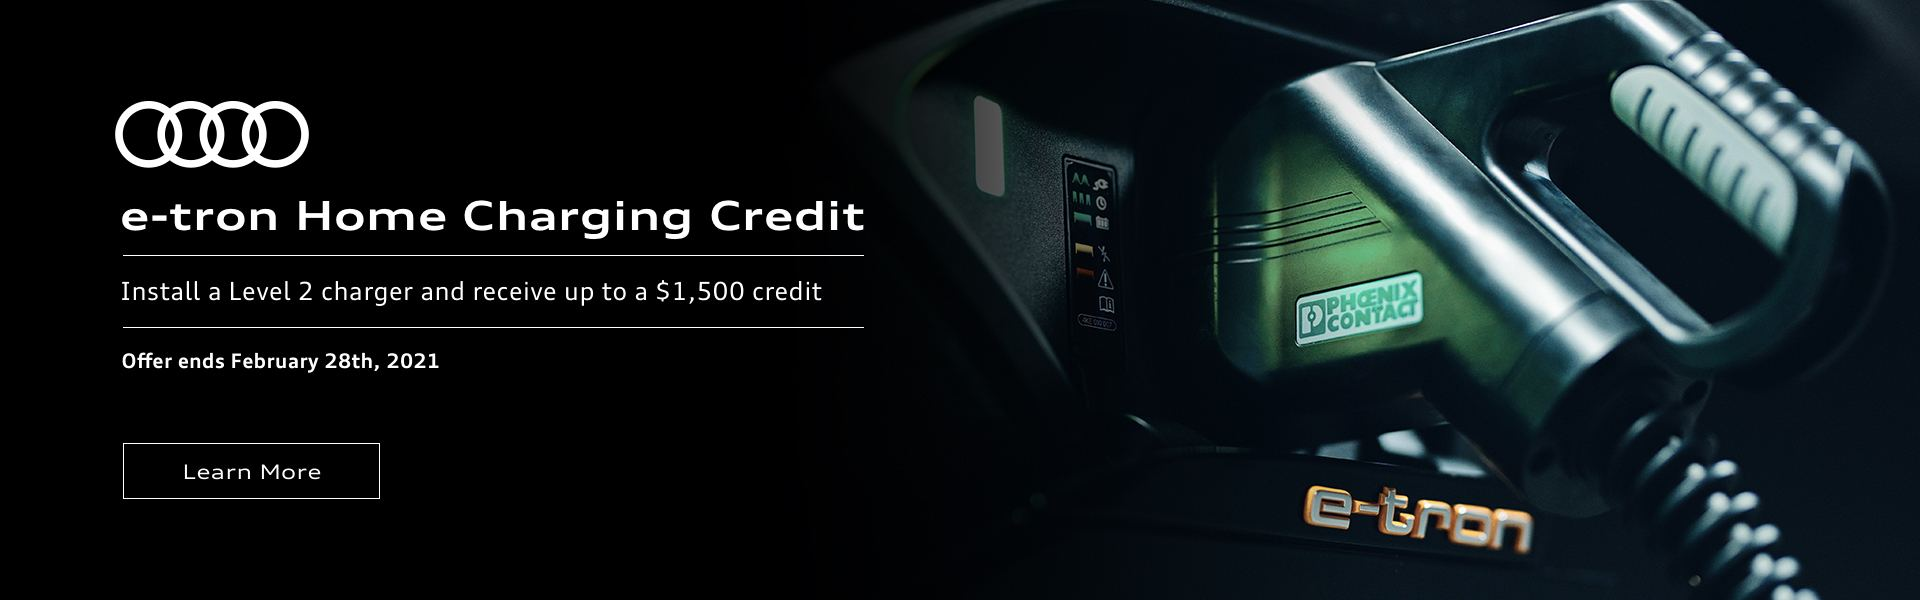 charging credit promo banner